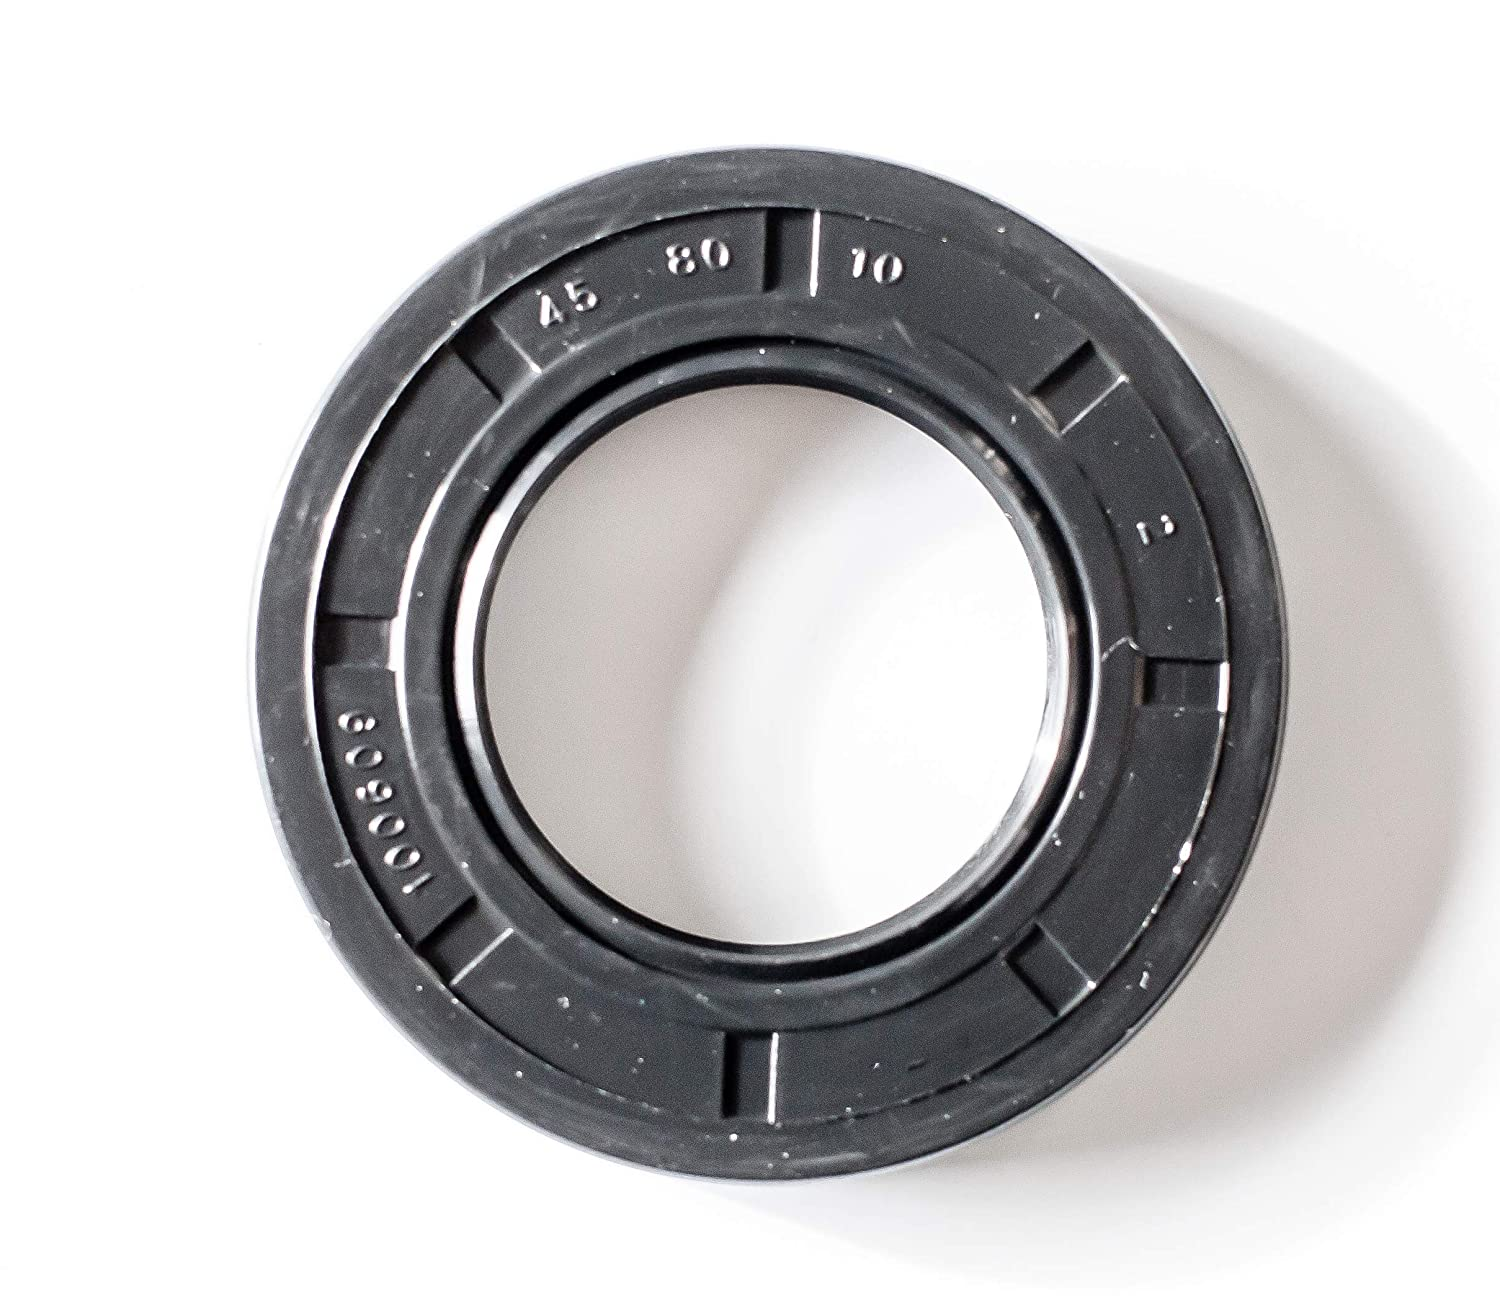 100mmX120mmX10mm Oil Seal 100X120X10 Oil Seal Grease Seal TC  EAI Double Lip w//Garter Spring Single Metal Case w//Nitrile Rubber Coating 3.937x4.724x0.394